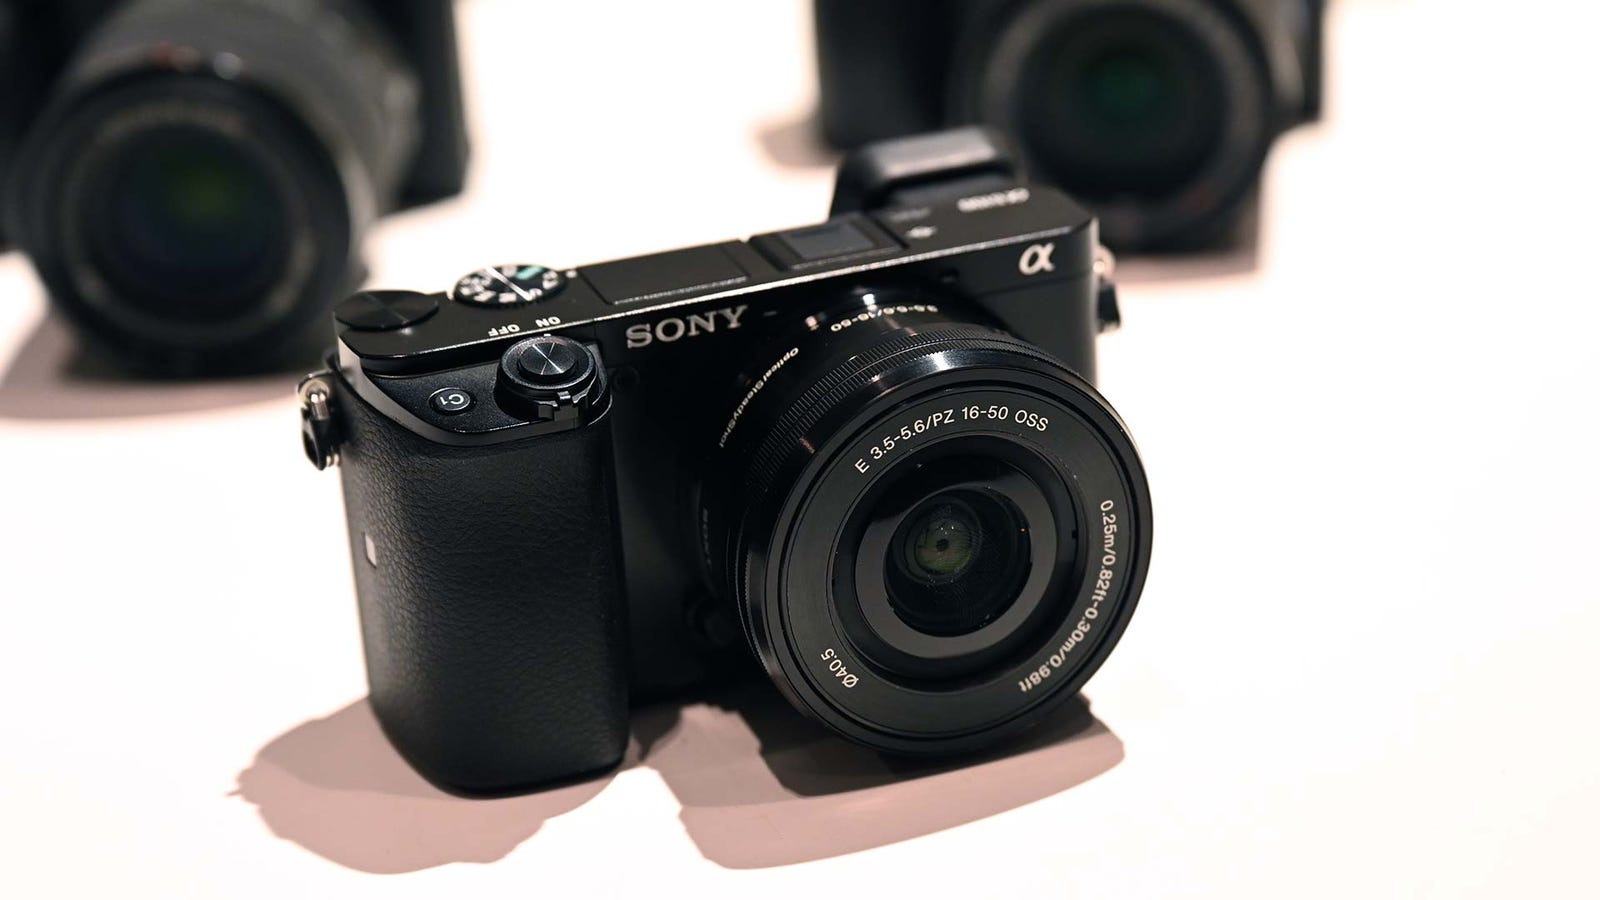 Illustration for article titled Sony Brings Big Tech to More Affordable APS-C Cameras with the a6600 and a6100